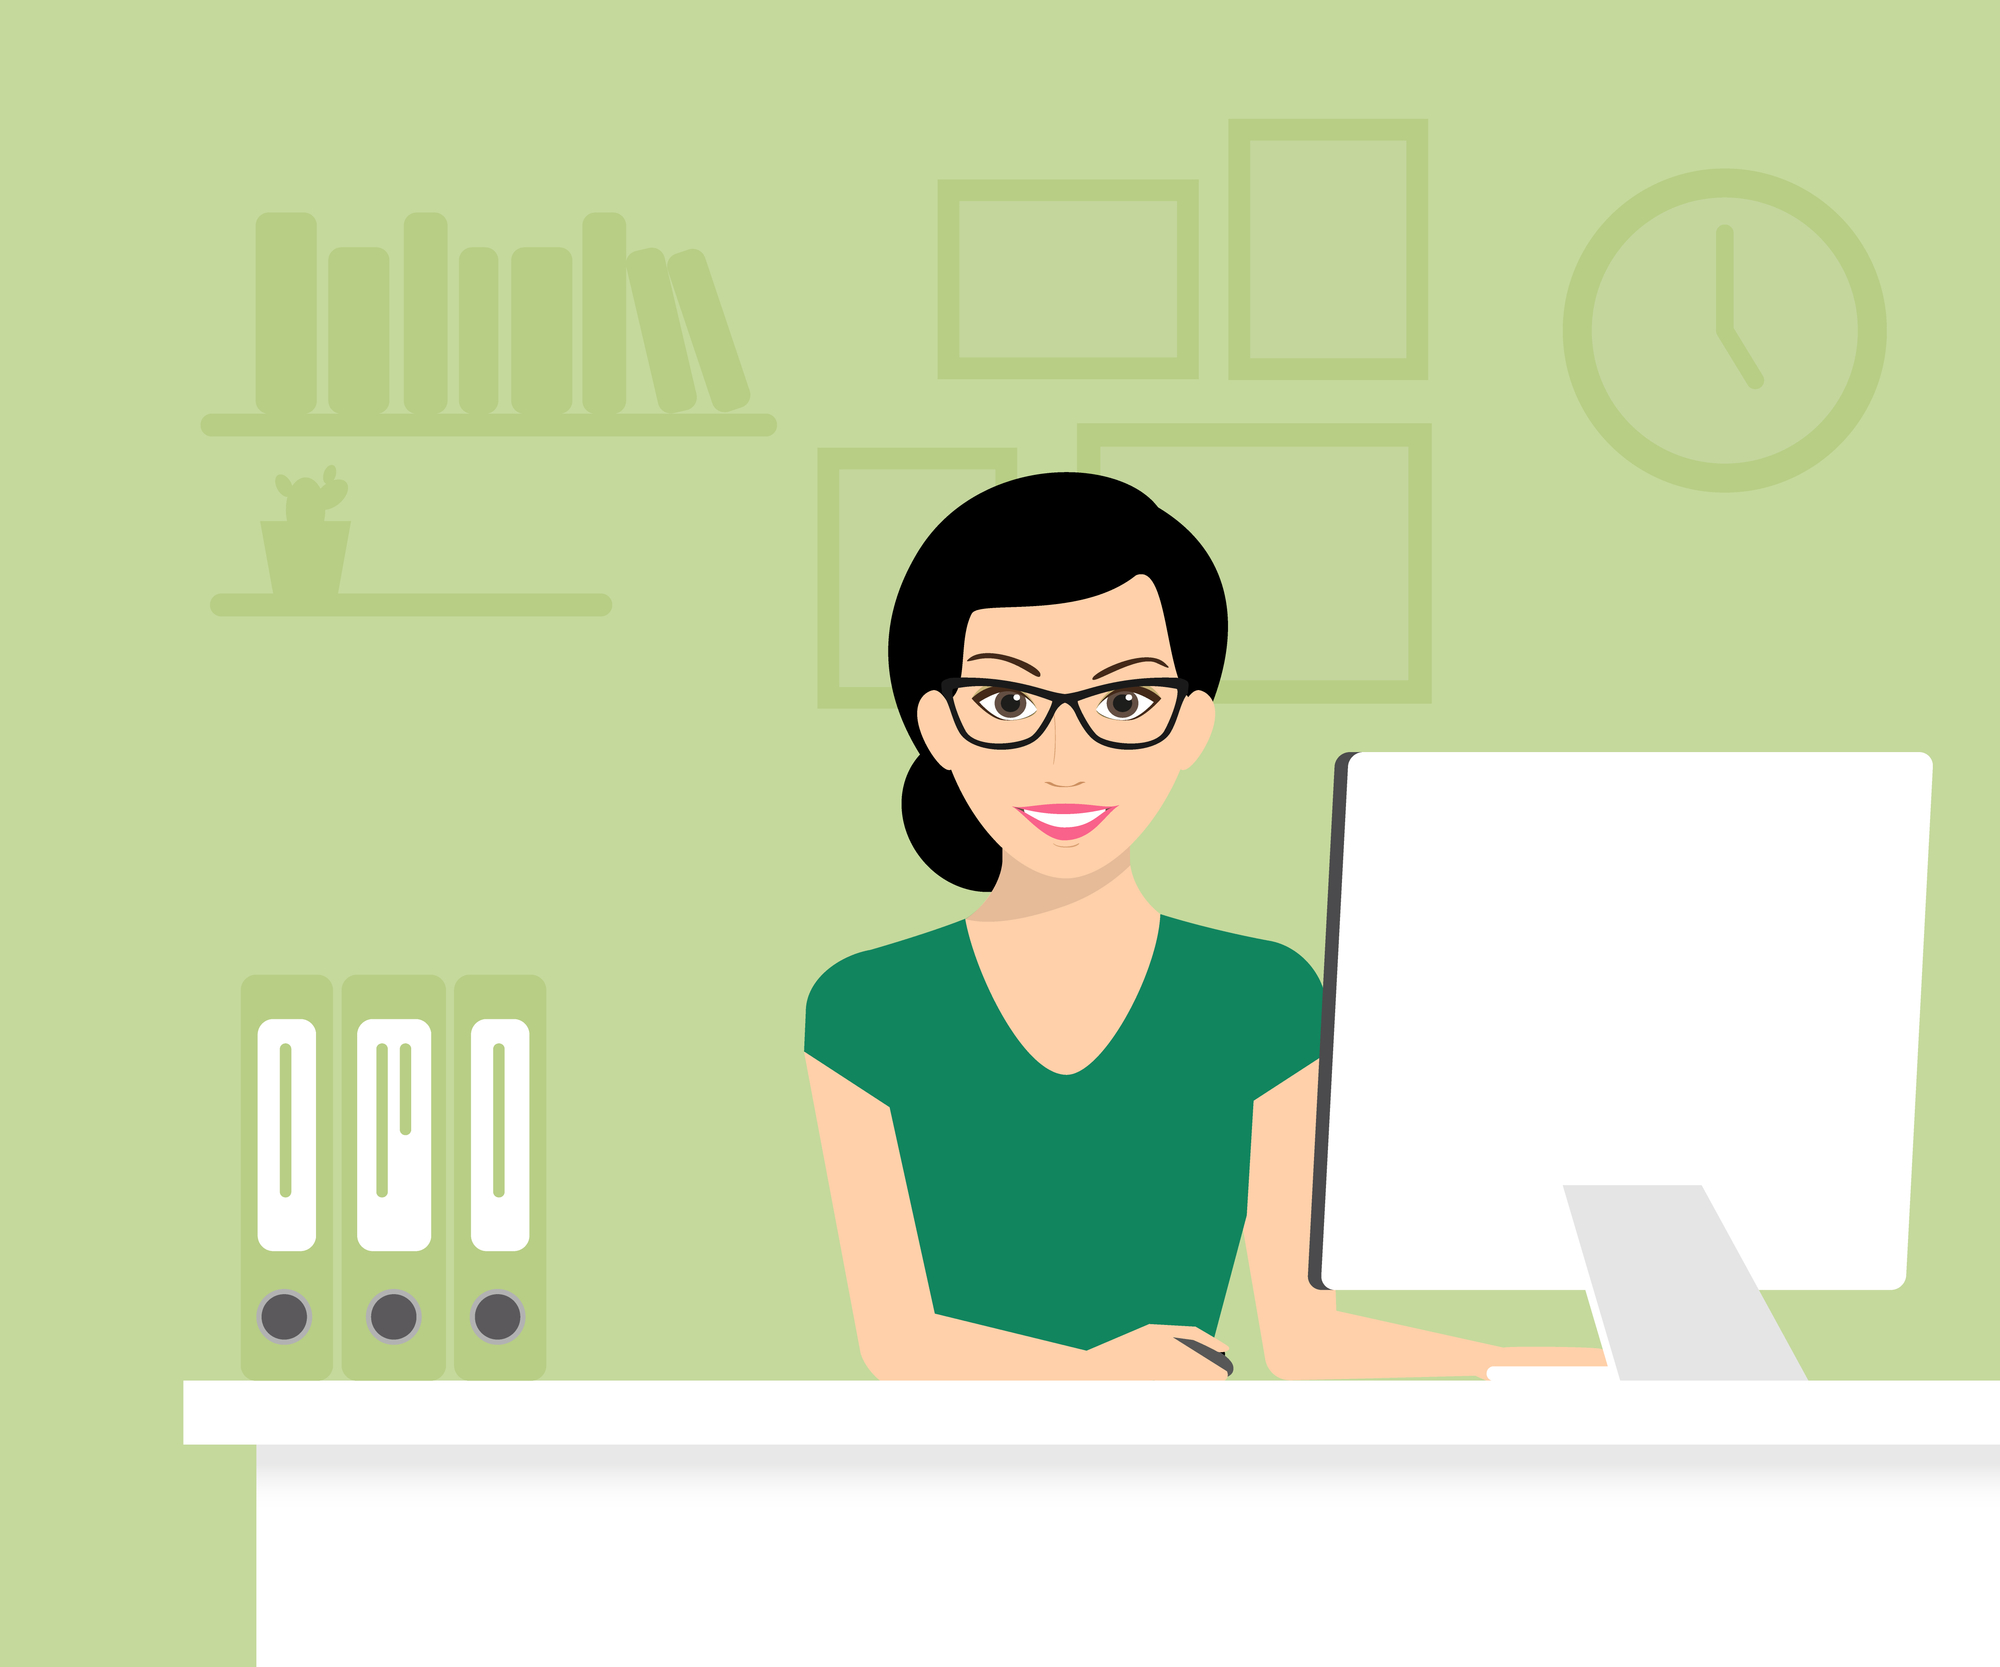 Woman with glasses at computer pic.jpg